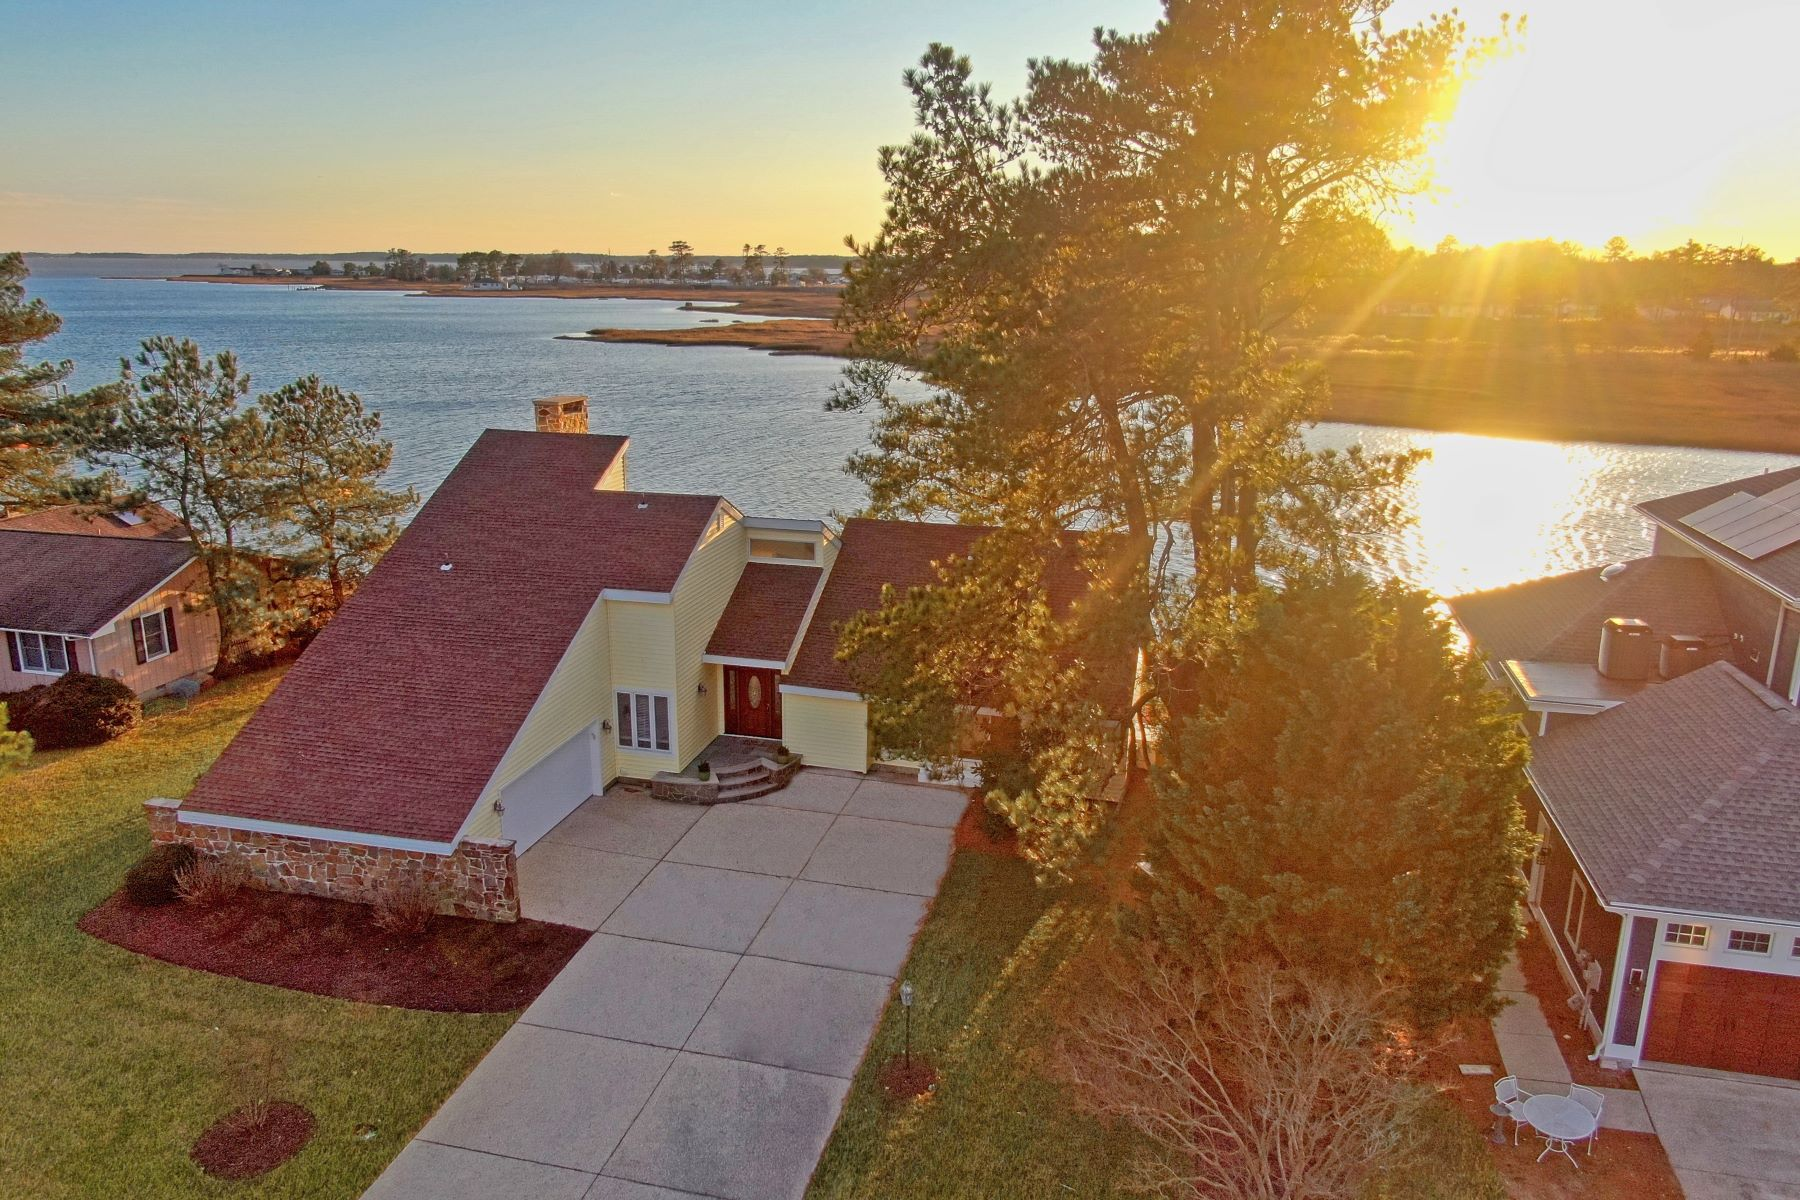 Single Family Homes for Sale at 57 West Side Drive Rehoboth Beach, Delaware 19971 United States